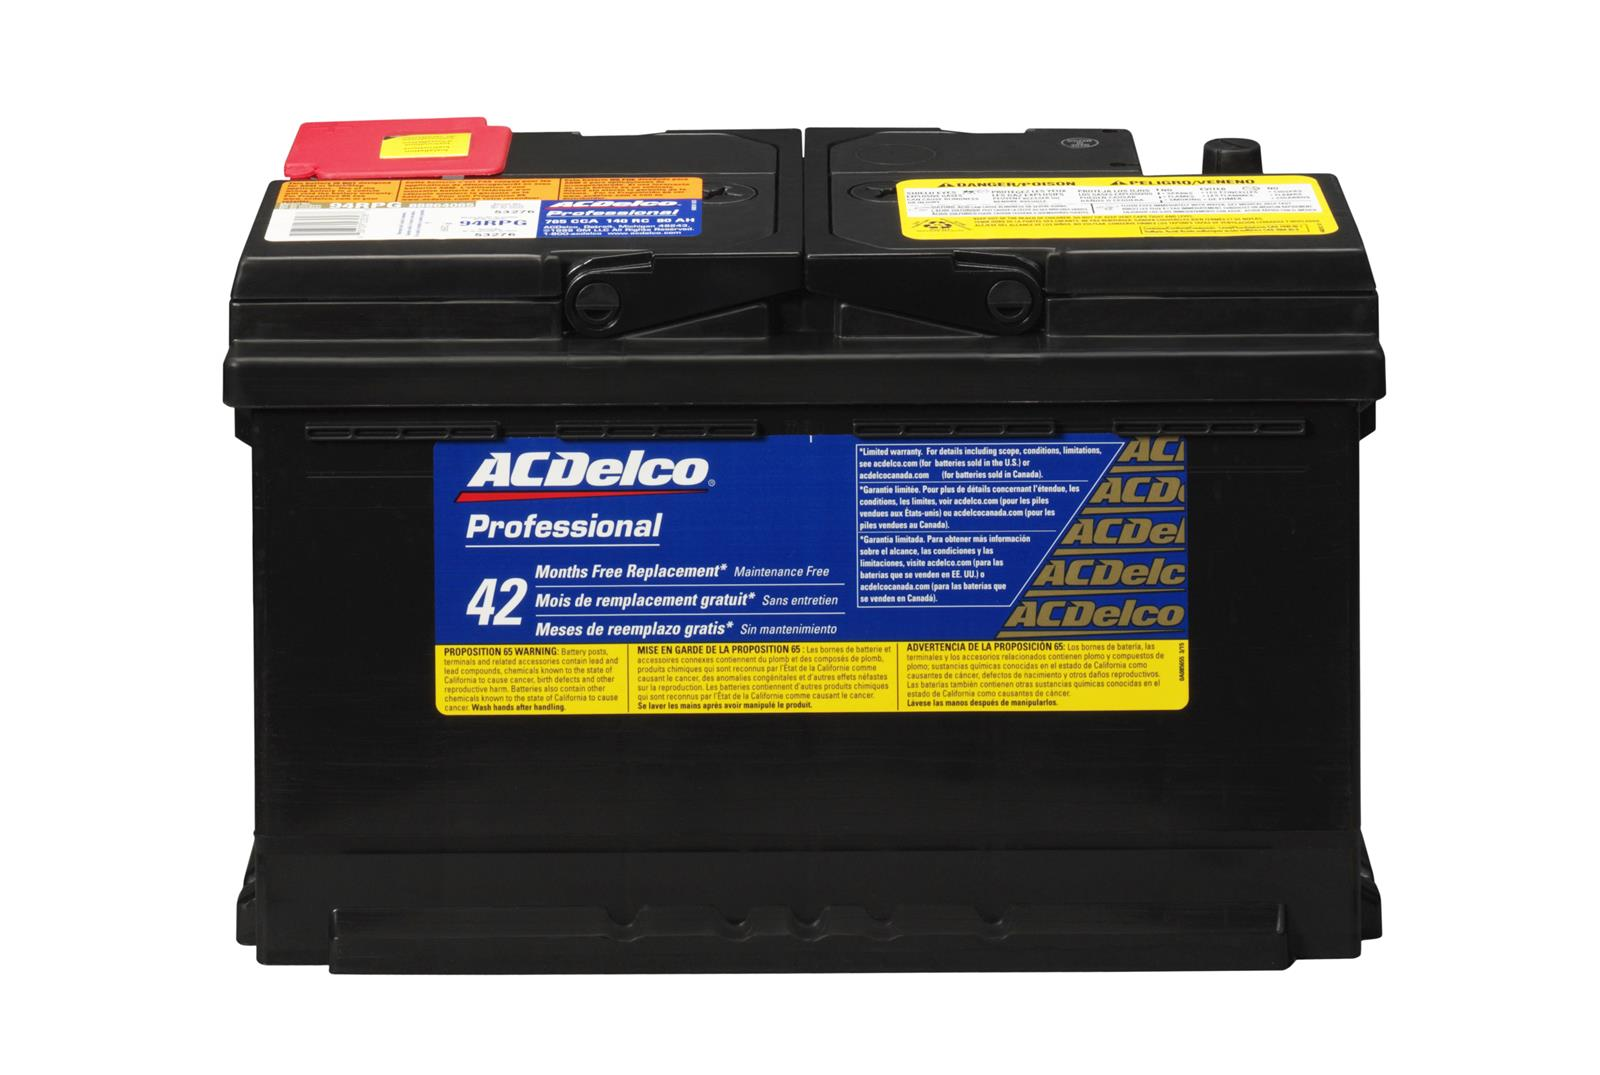 Car Batteries ACDelco: Reviews, Comments, Review